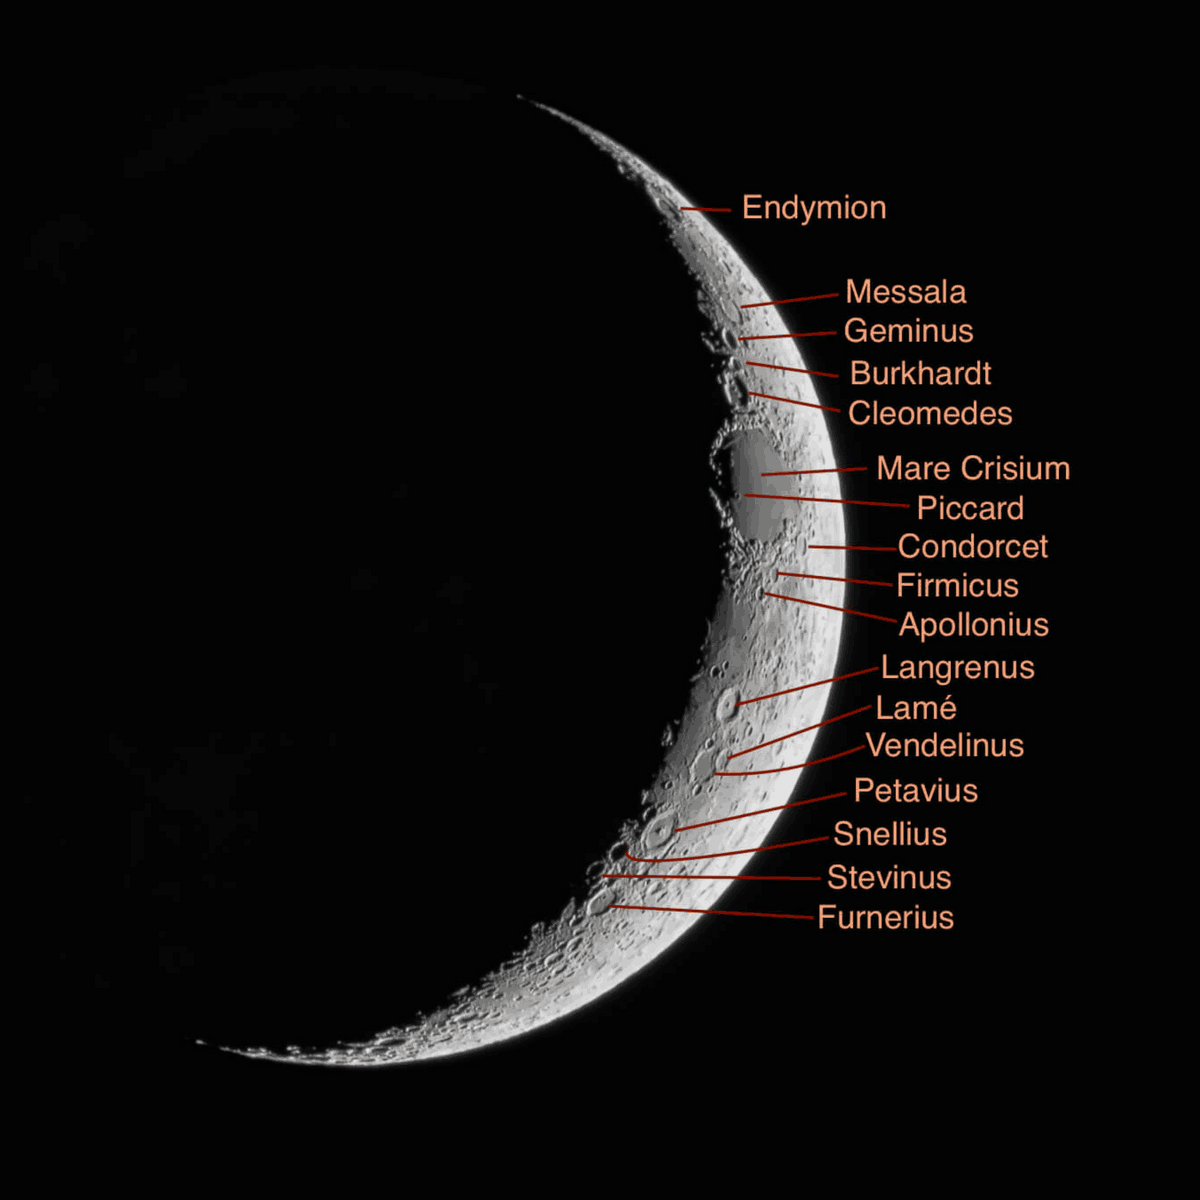 Waxing crescent lunar features